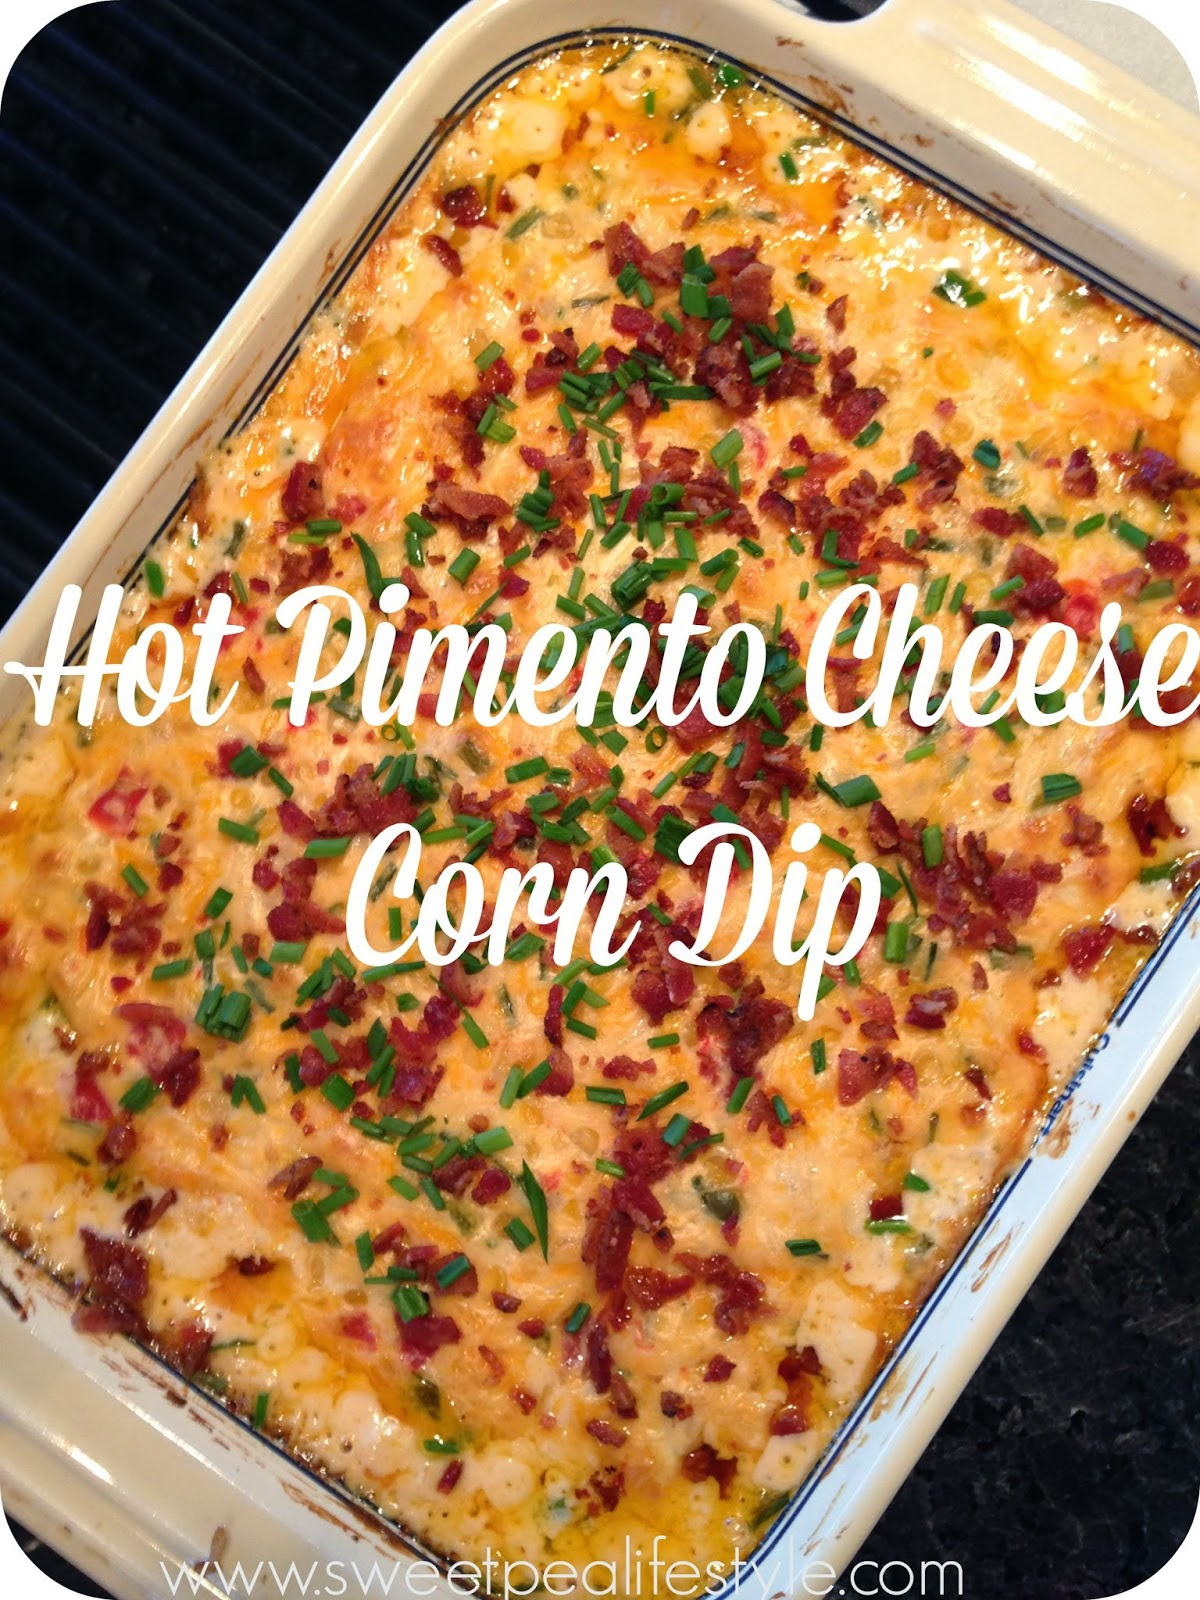 Pimento Cheese Corn Dip!